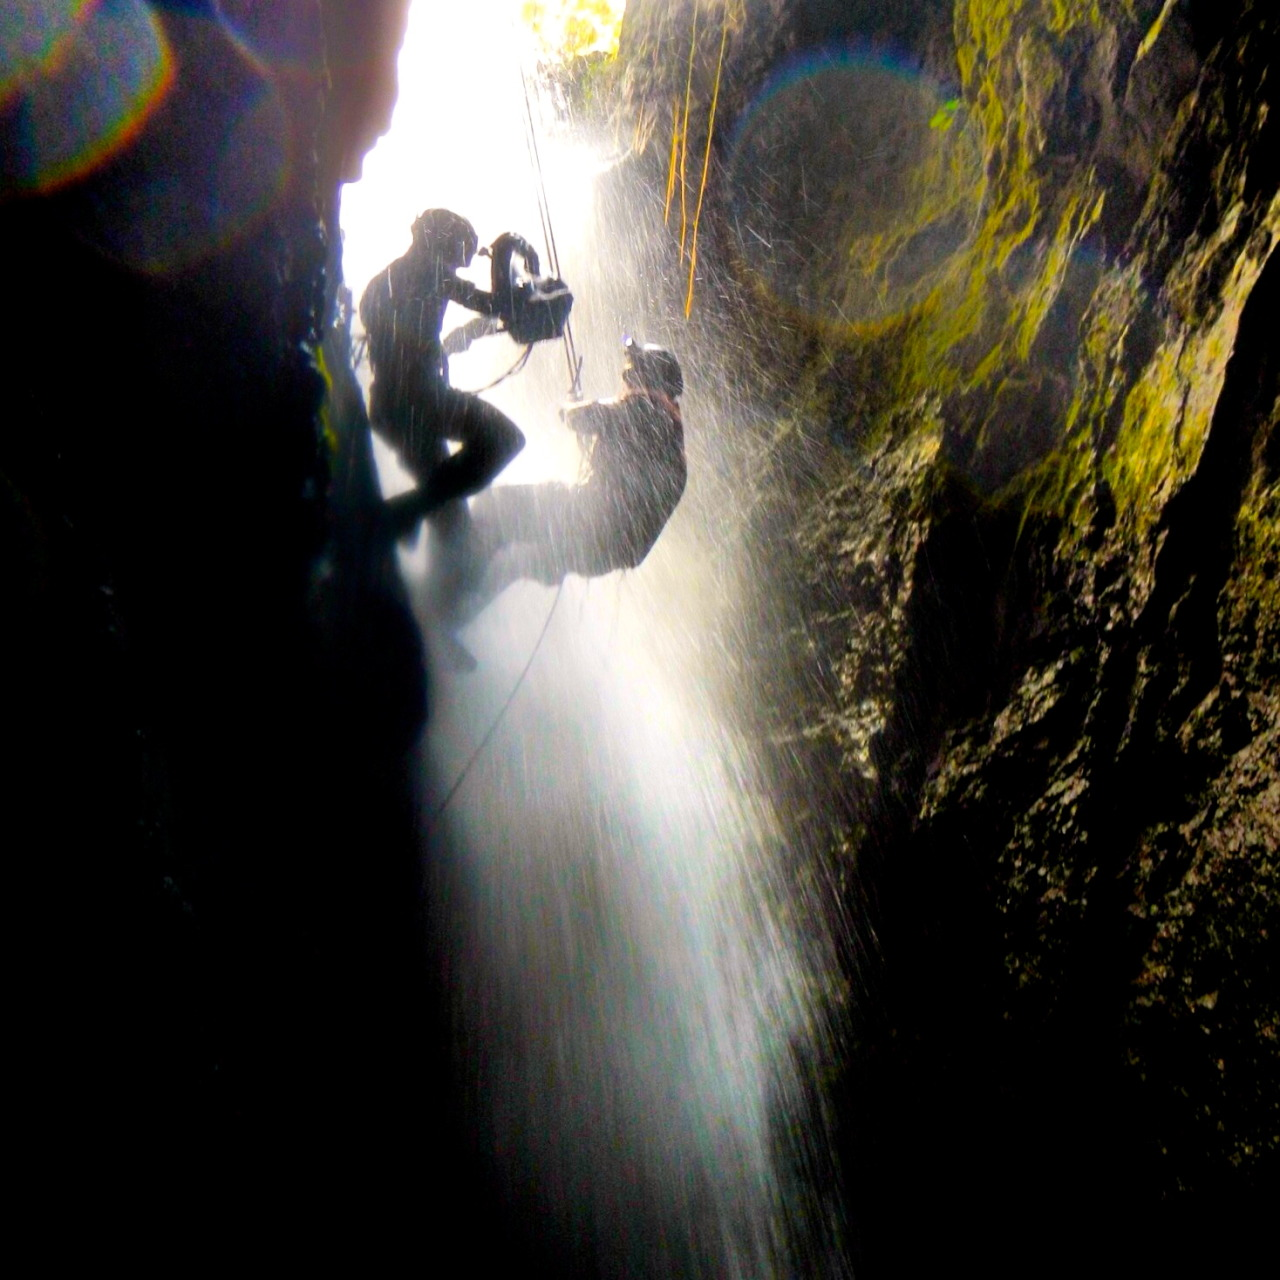 One of my favourite behind the scenes pictures and a real highlight from my shoot in Mexico for Car Vs Wild.  Presenter Bill Wu is abseiling down the side of a waterfall into a pitch black subterranean bat cave. It's documented by DOP Dan Etheridge, who was roped up and beside him all the way. Quite a stunt to pull off when you're being pummelled by a raging torrent of water. I climbed into the cave ahead of the ascent and waited ankle deep in bat poo for the guys to touch down. We got an amazing sequence, topped off by a climb and swim out, through a soupy mix of swamp water and bat faeces. All in a day's work.